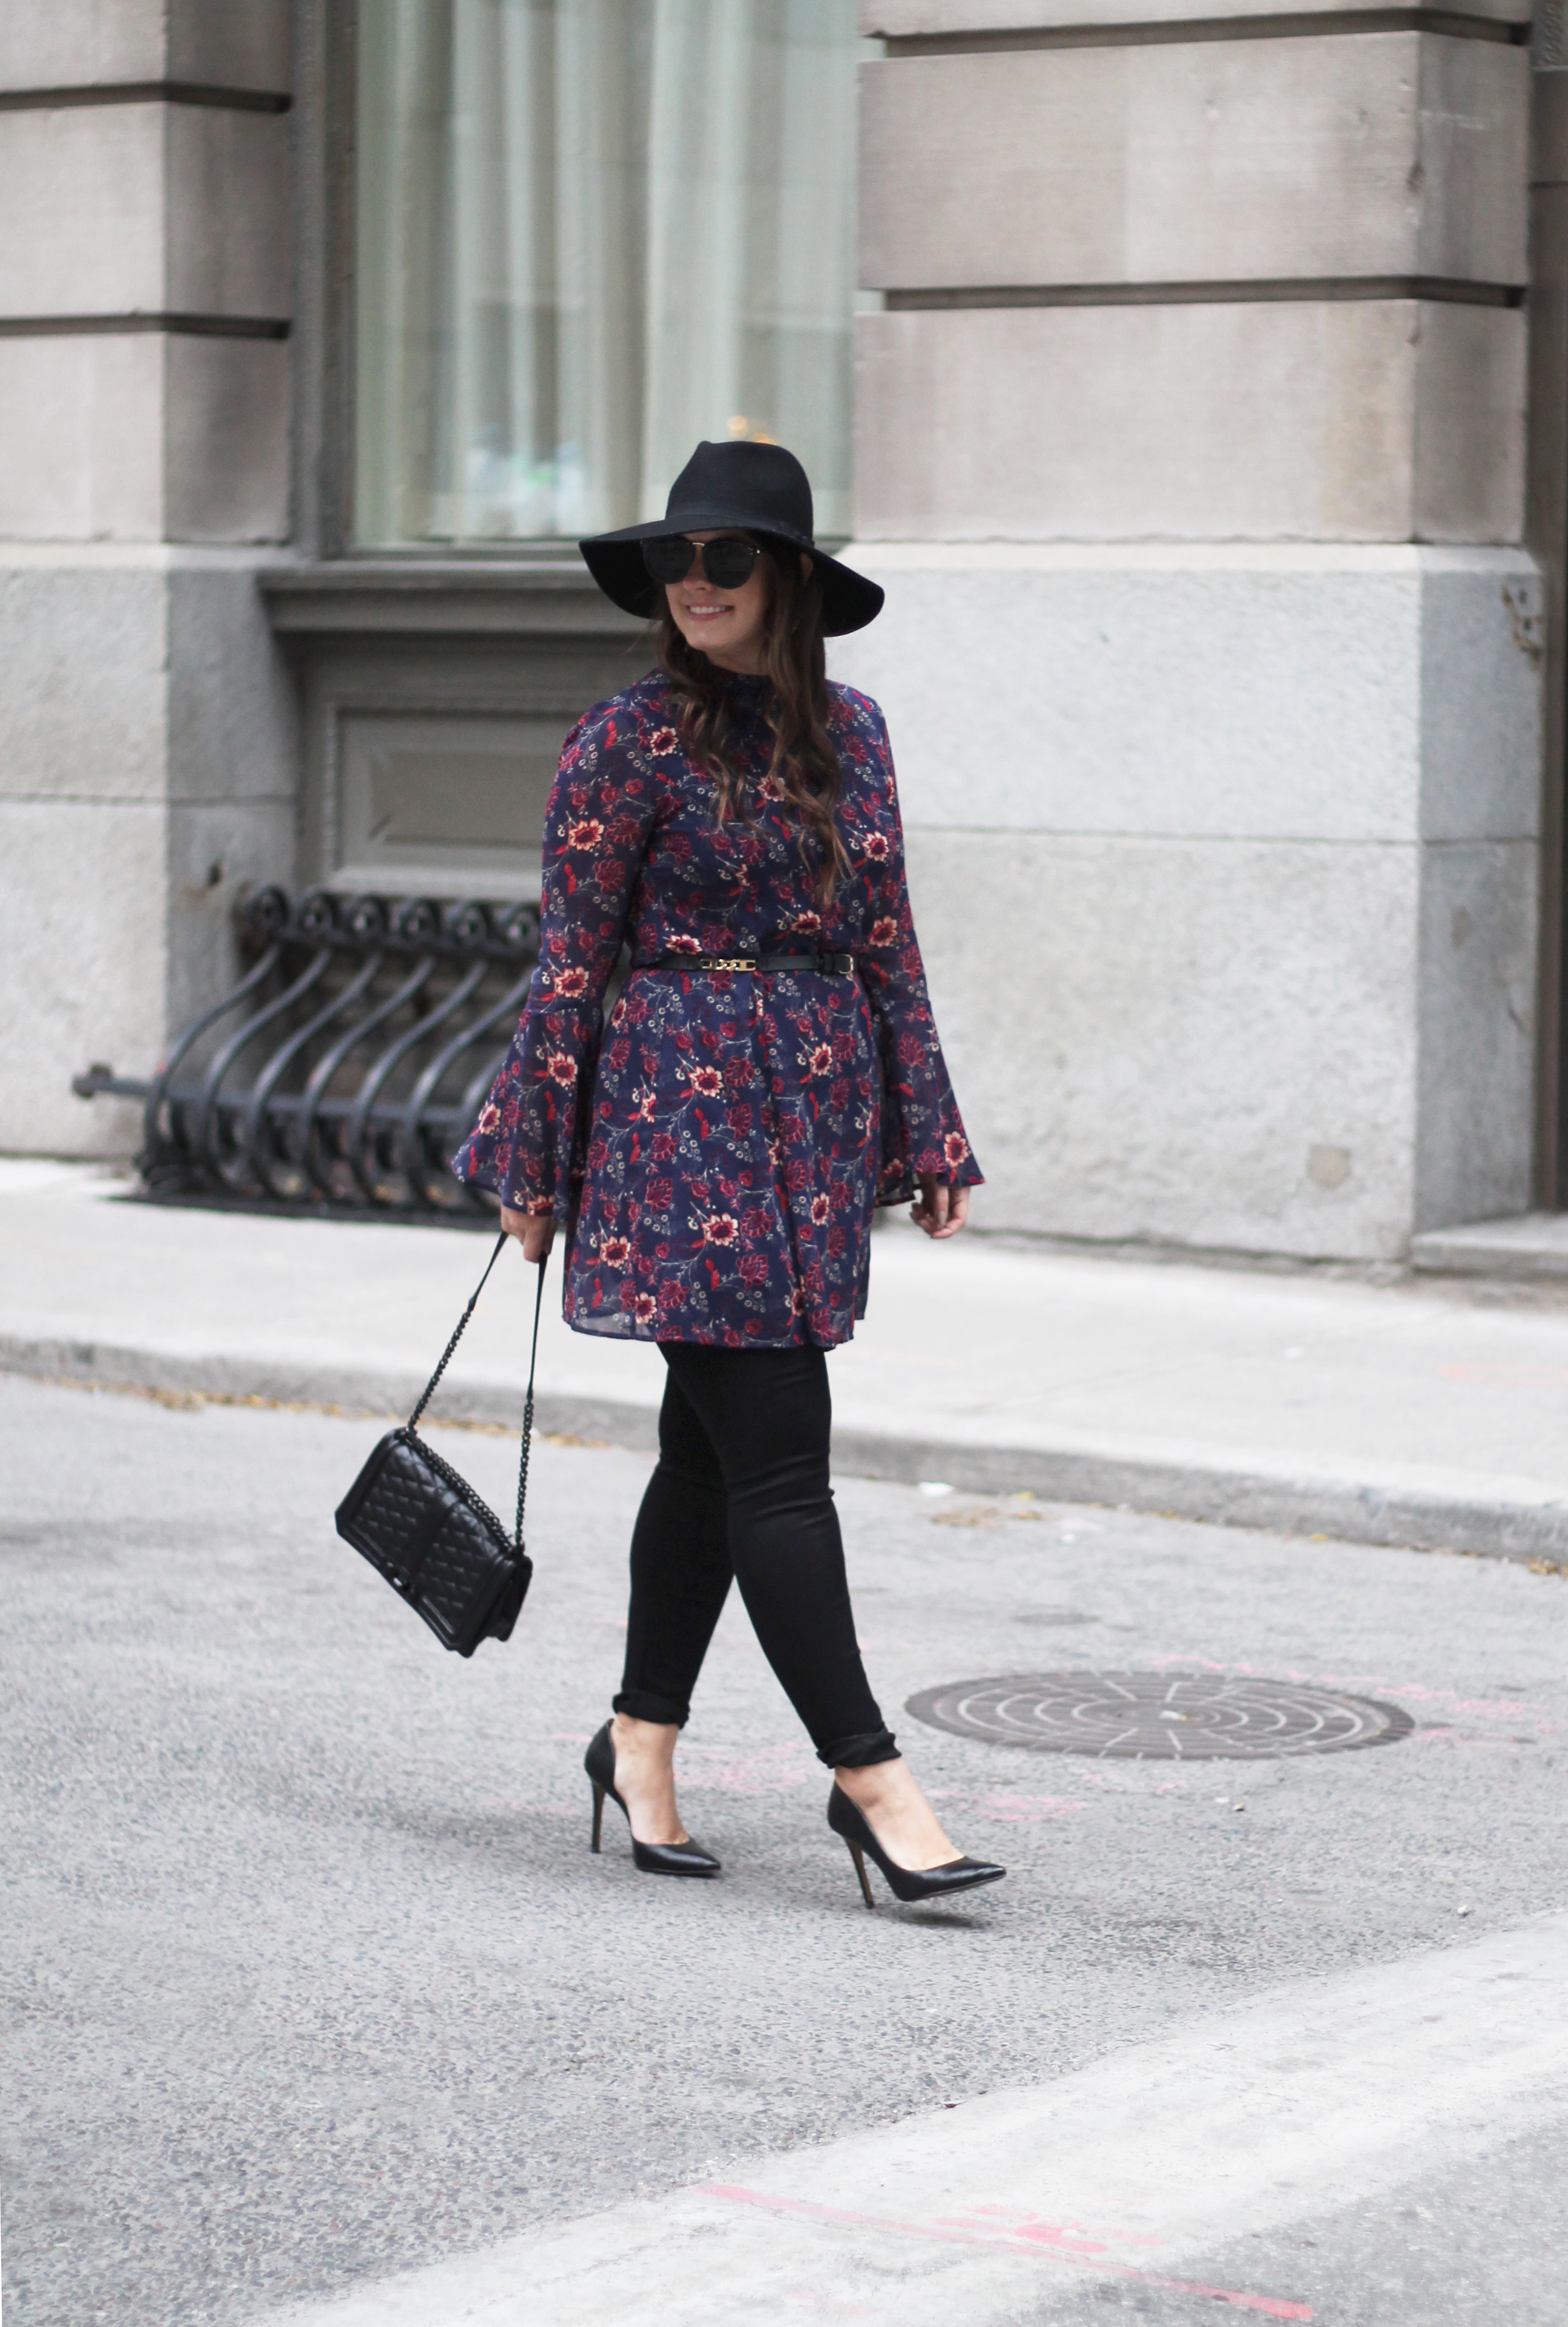 fashion-style-inspiration-outfit-ideas-floral-dress